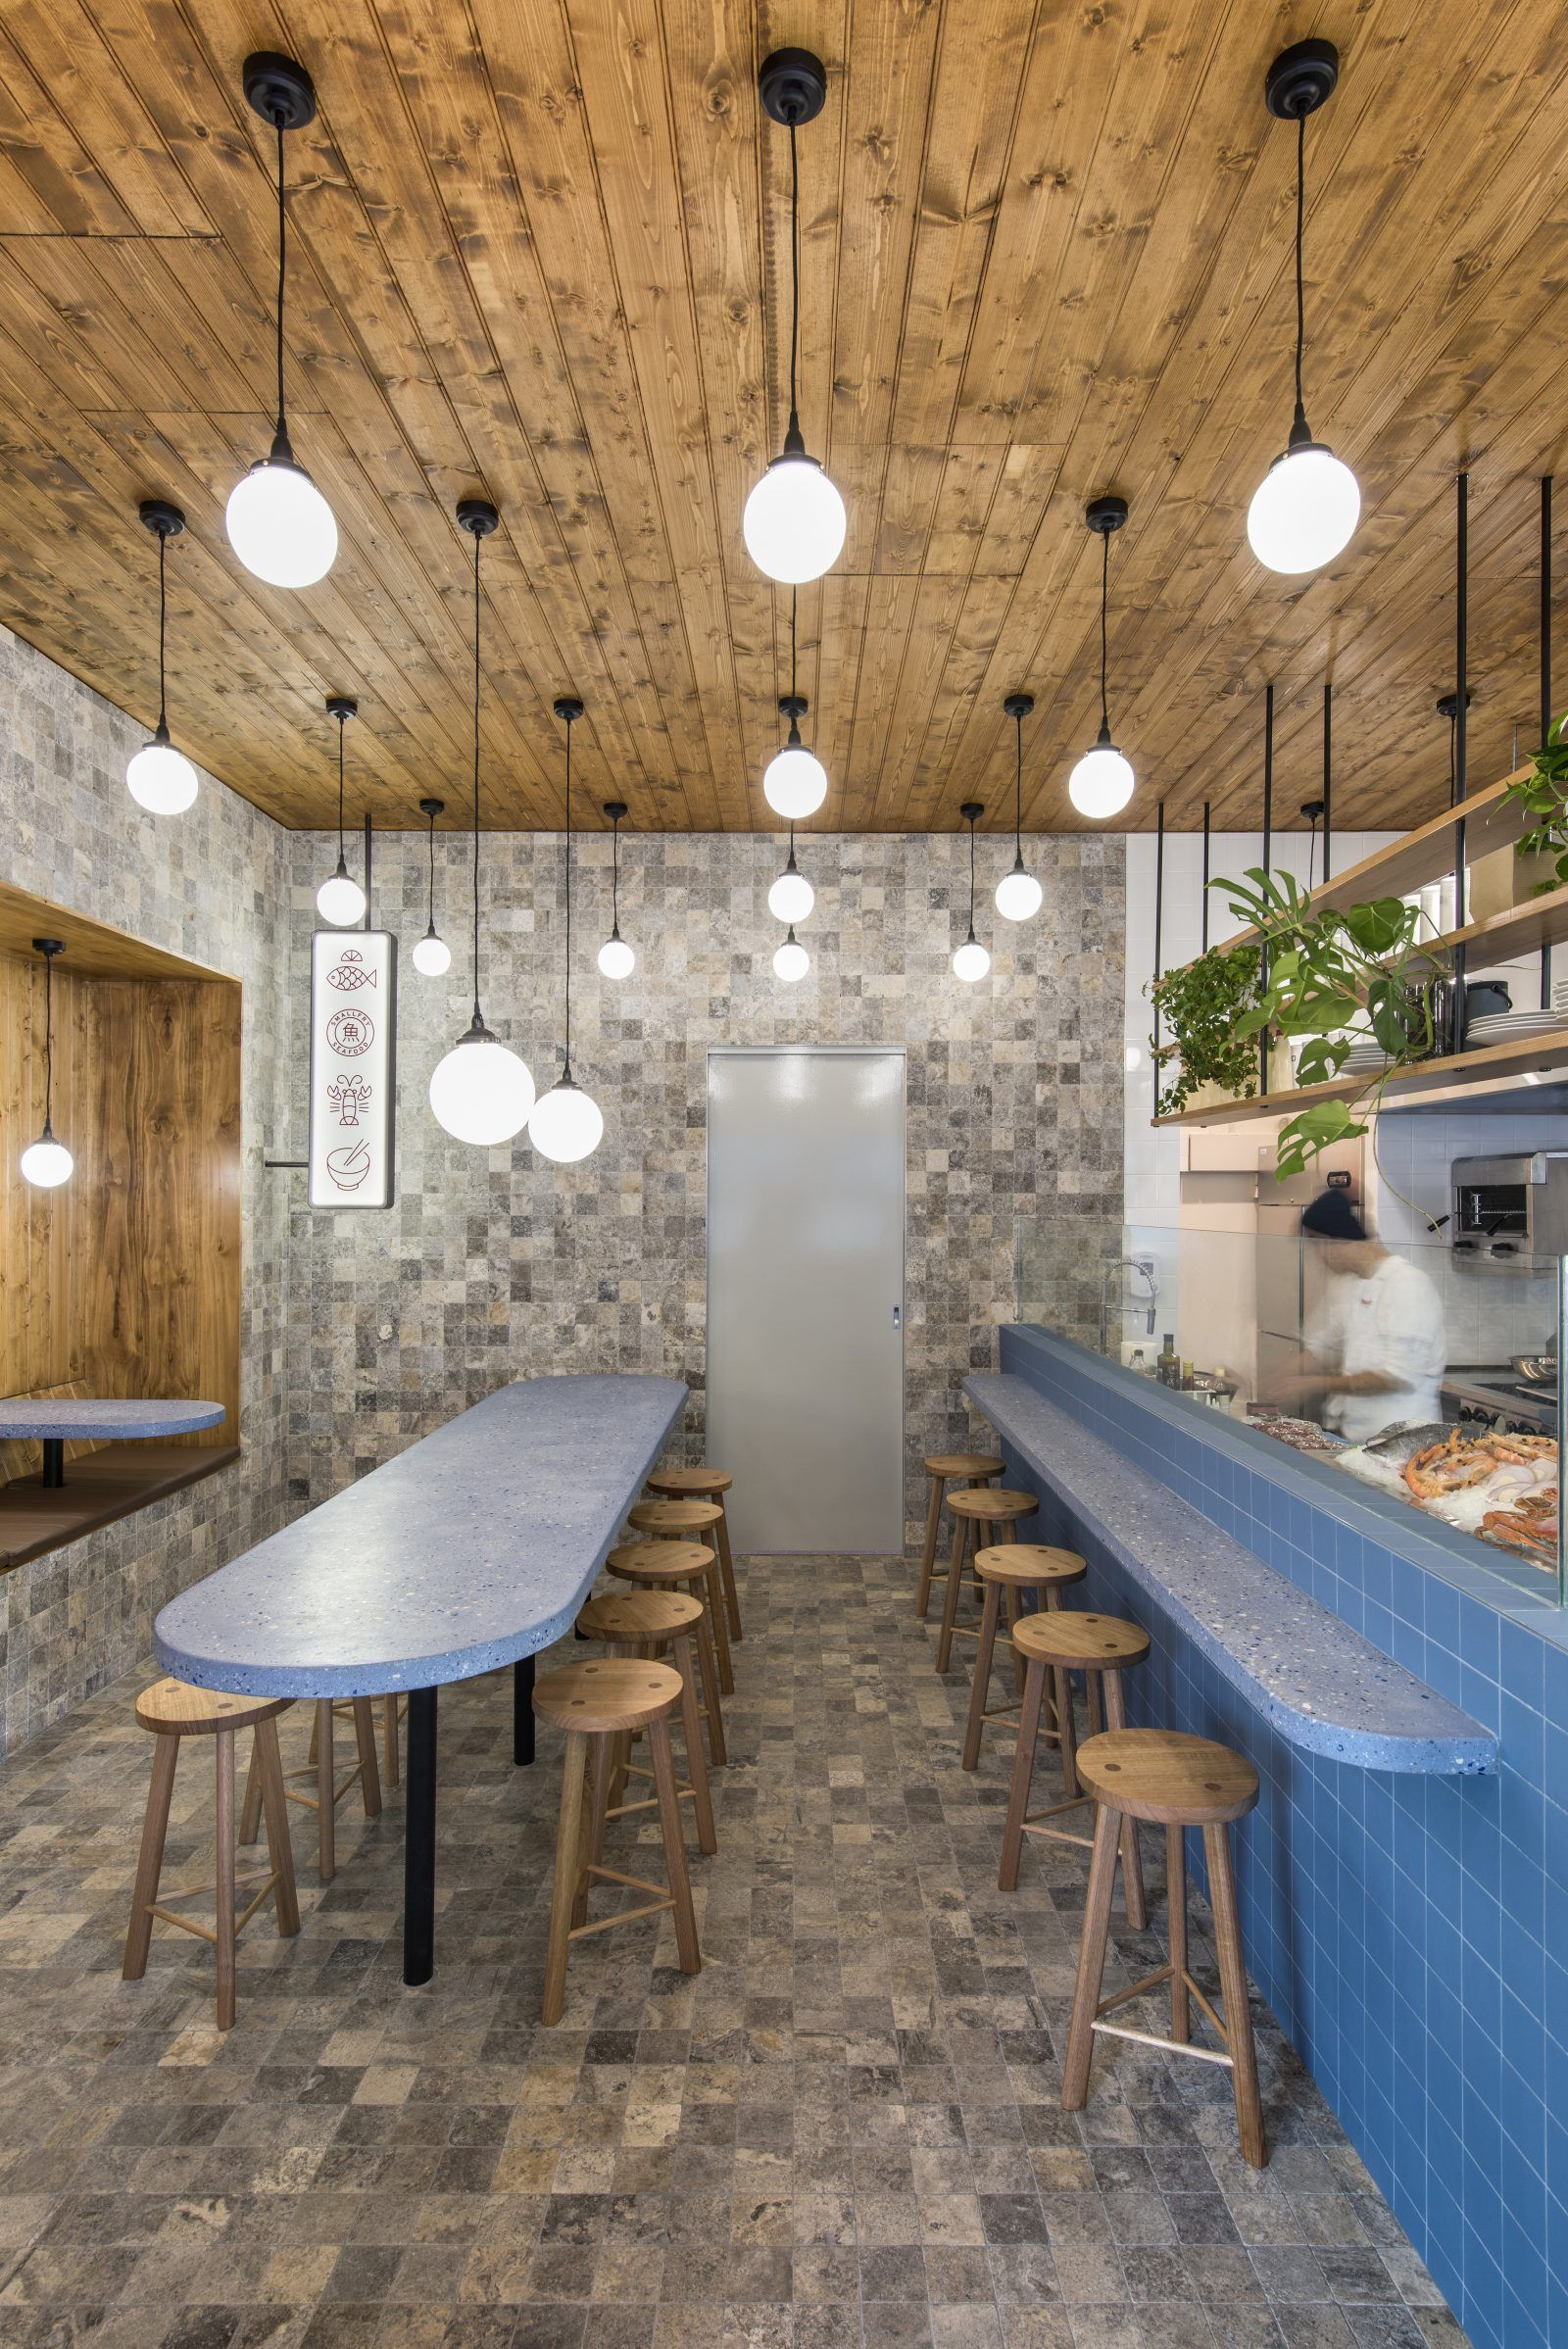 Sans Arc Studio Designs An Off Beat Fish And Chip Bar With A